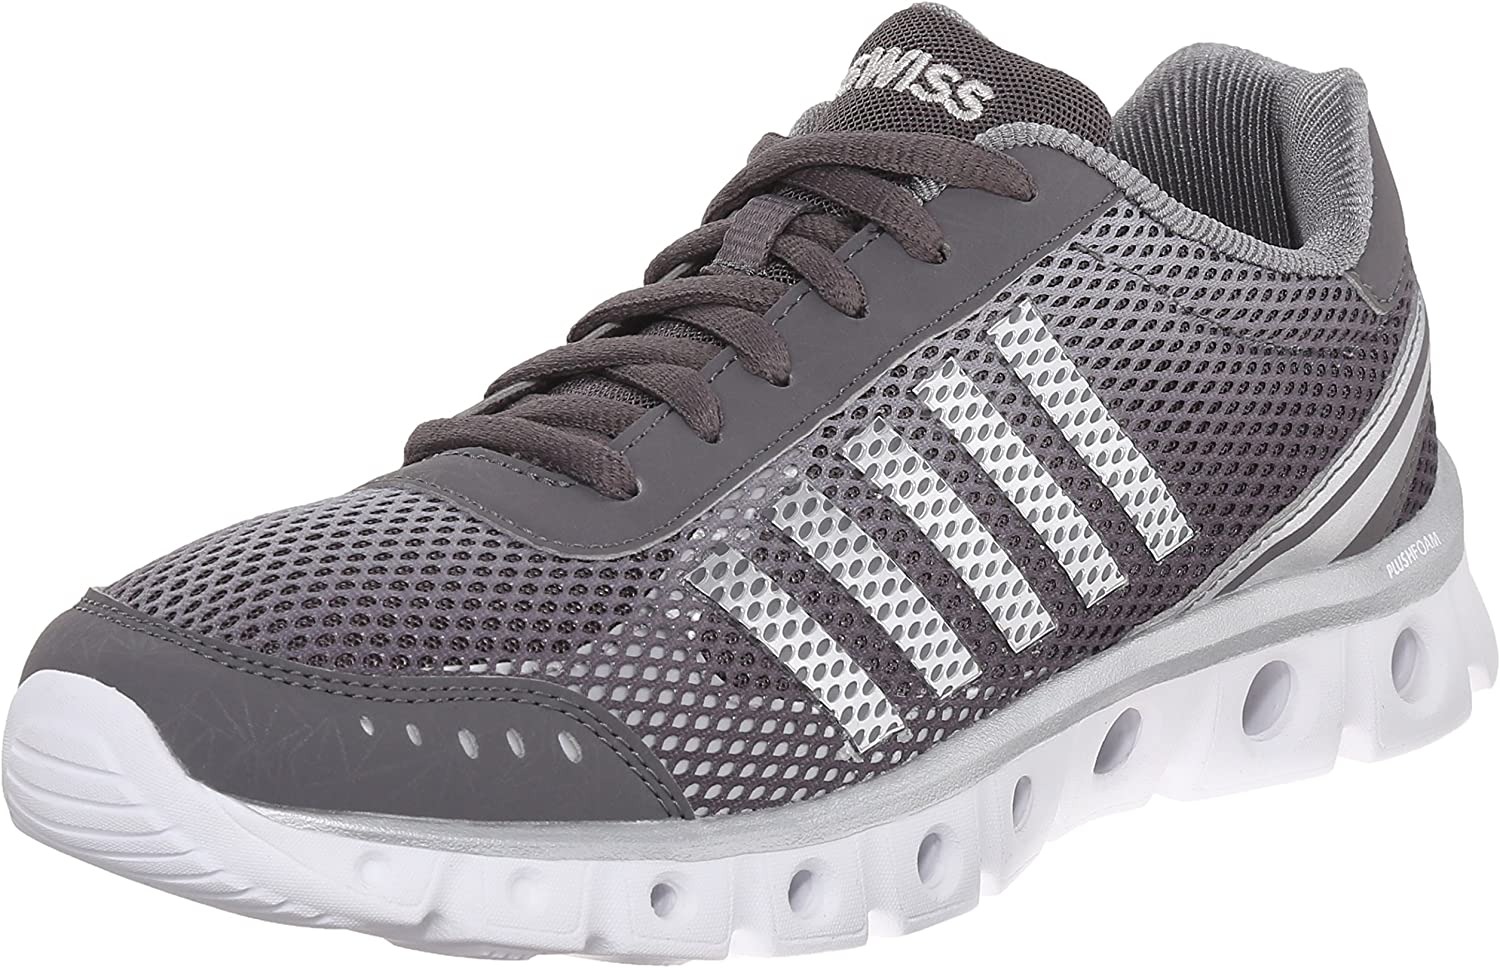 X Lite Athletic Athletic CMF Athletic, Charcoal / High Rise / White, 9 M US: Amazon.es: Zapatos y complementos